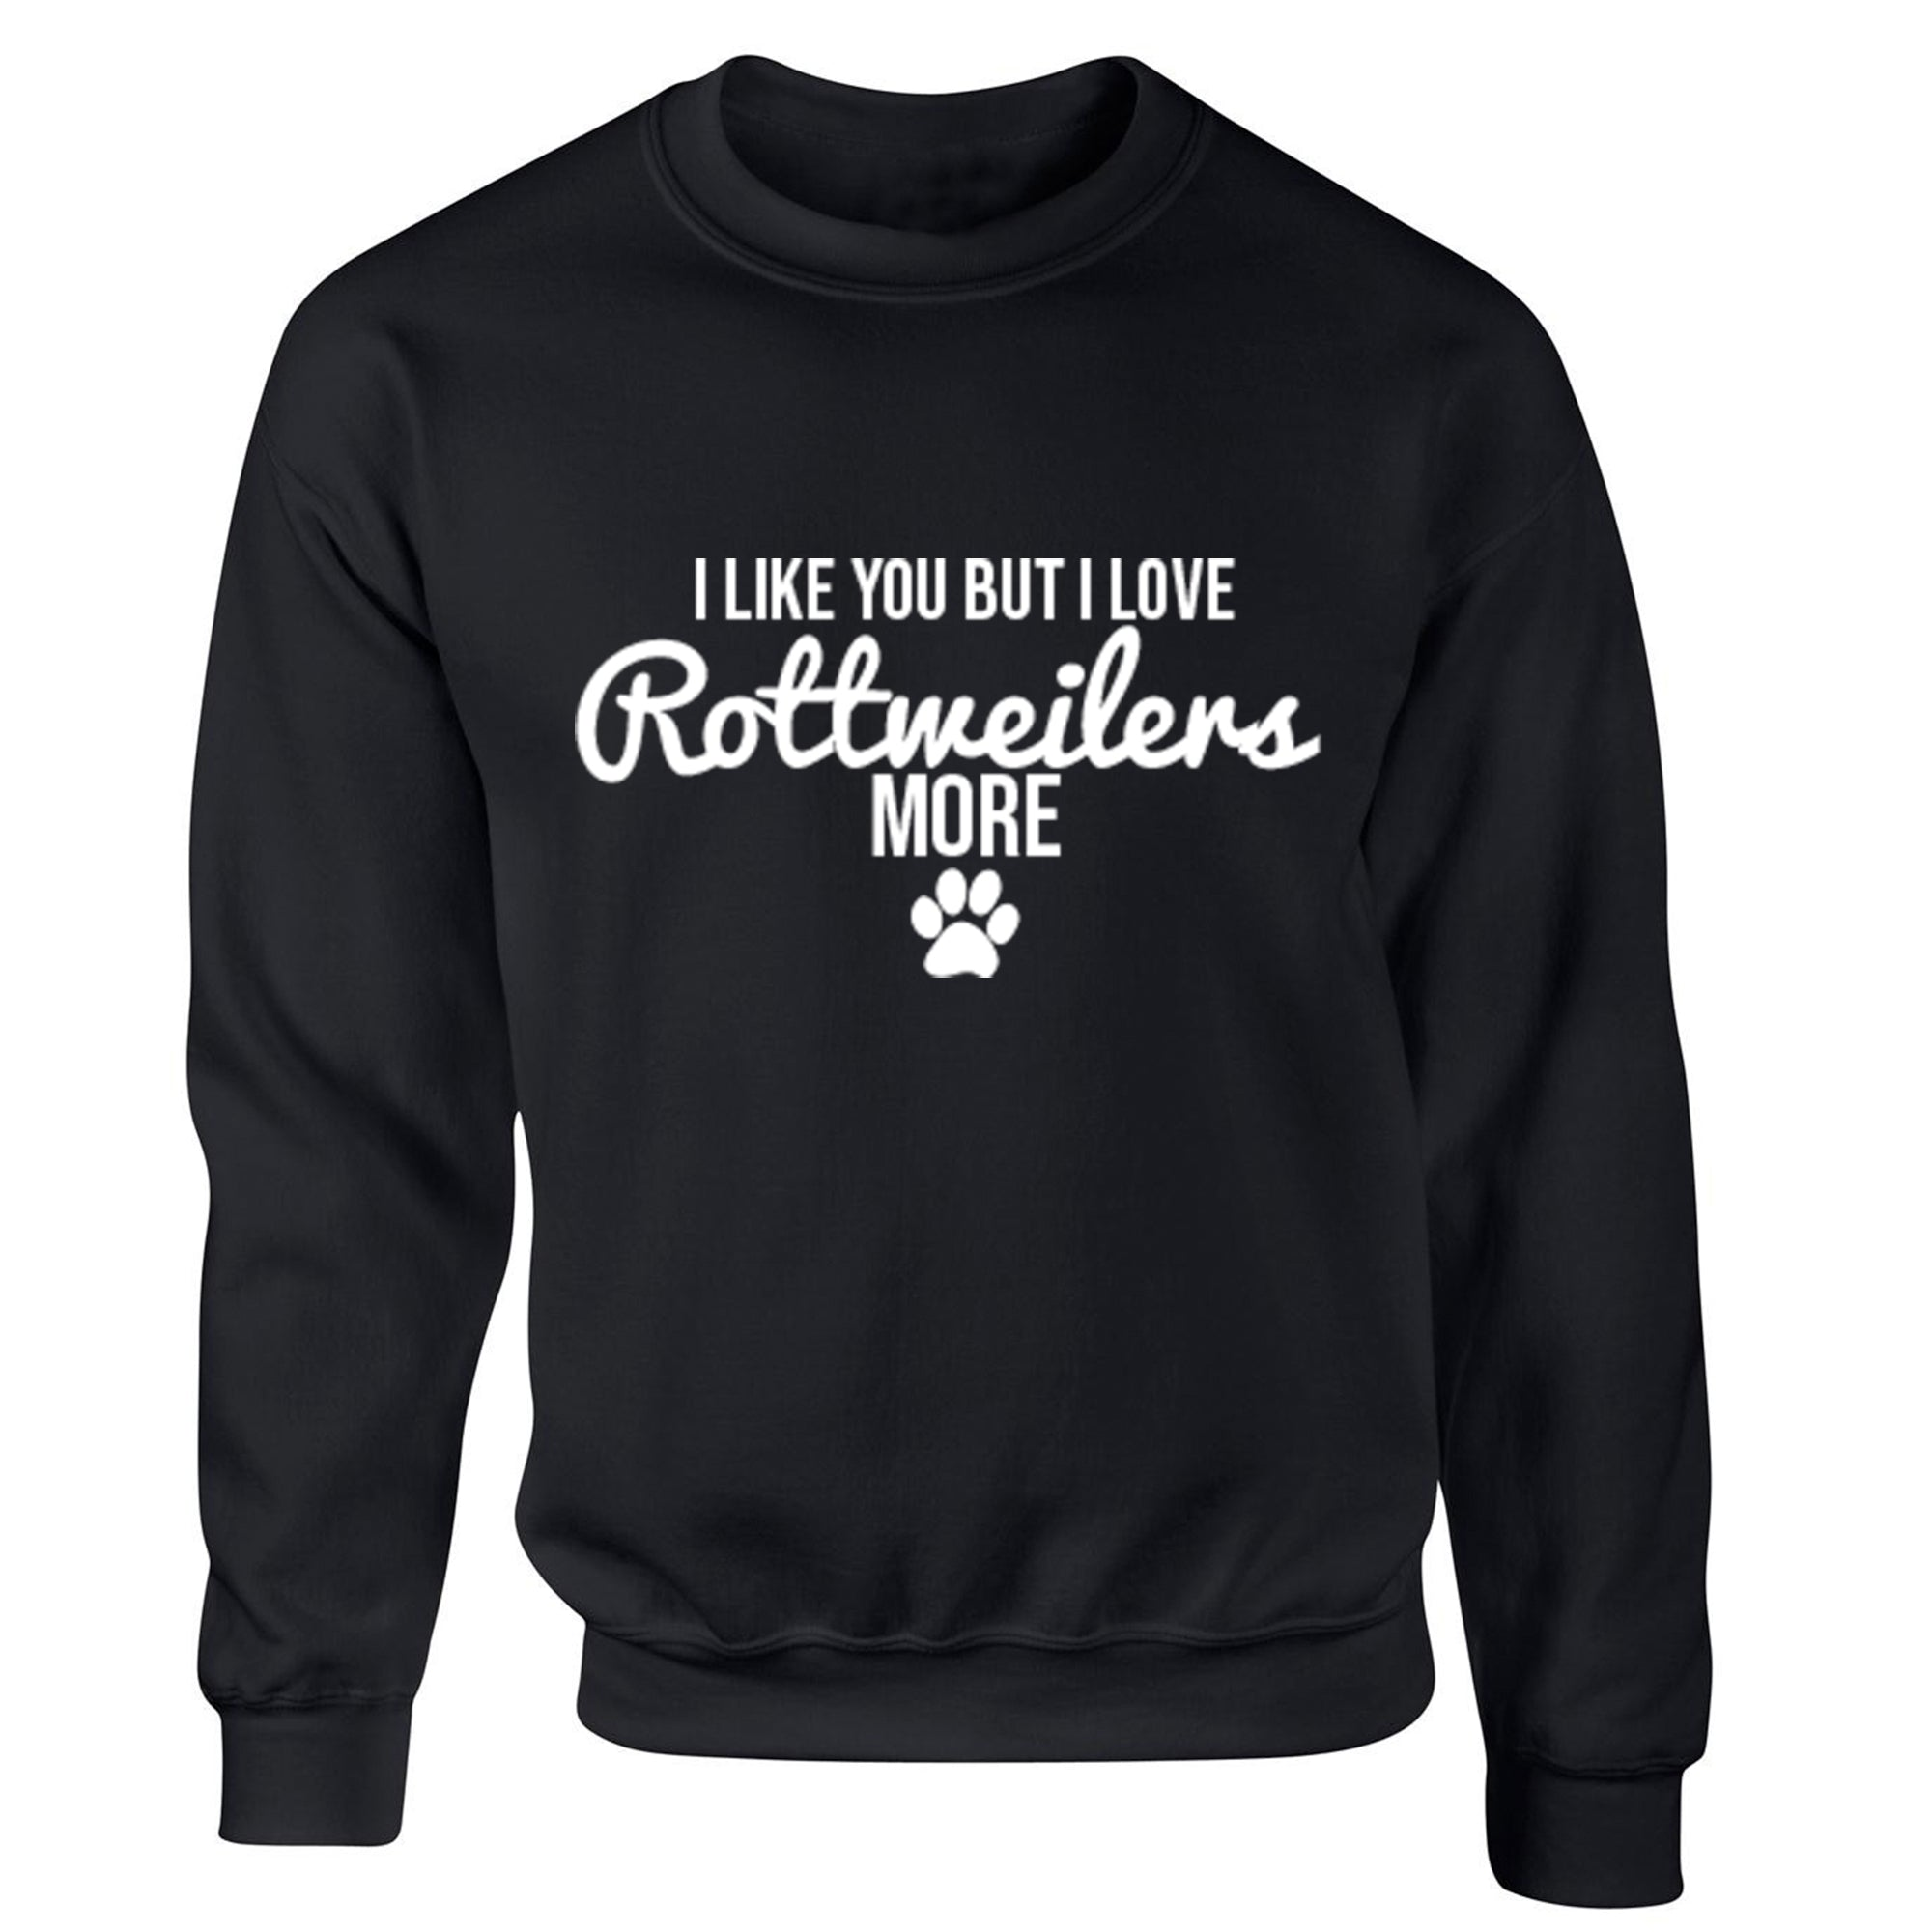 I Like You But I Love Rottweilers More Unisex Jumper S0094 - Illustrated Identity Ltd.